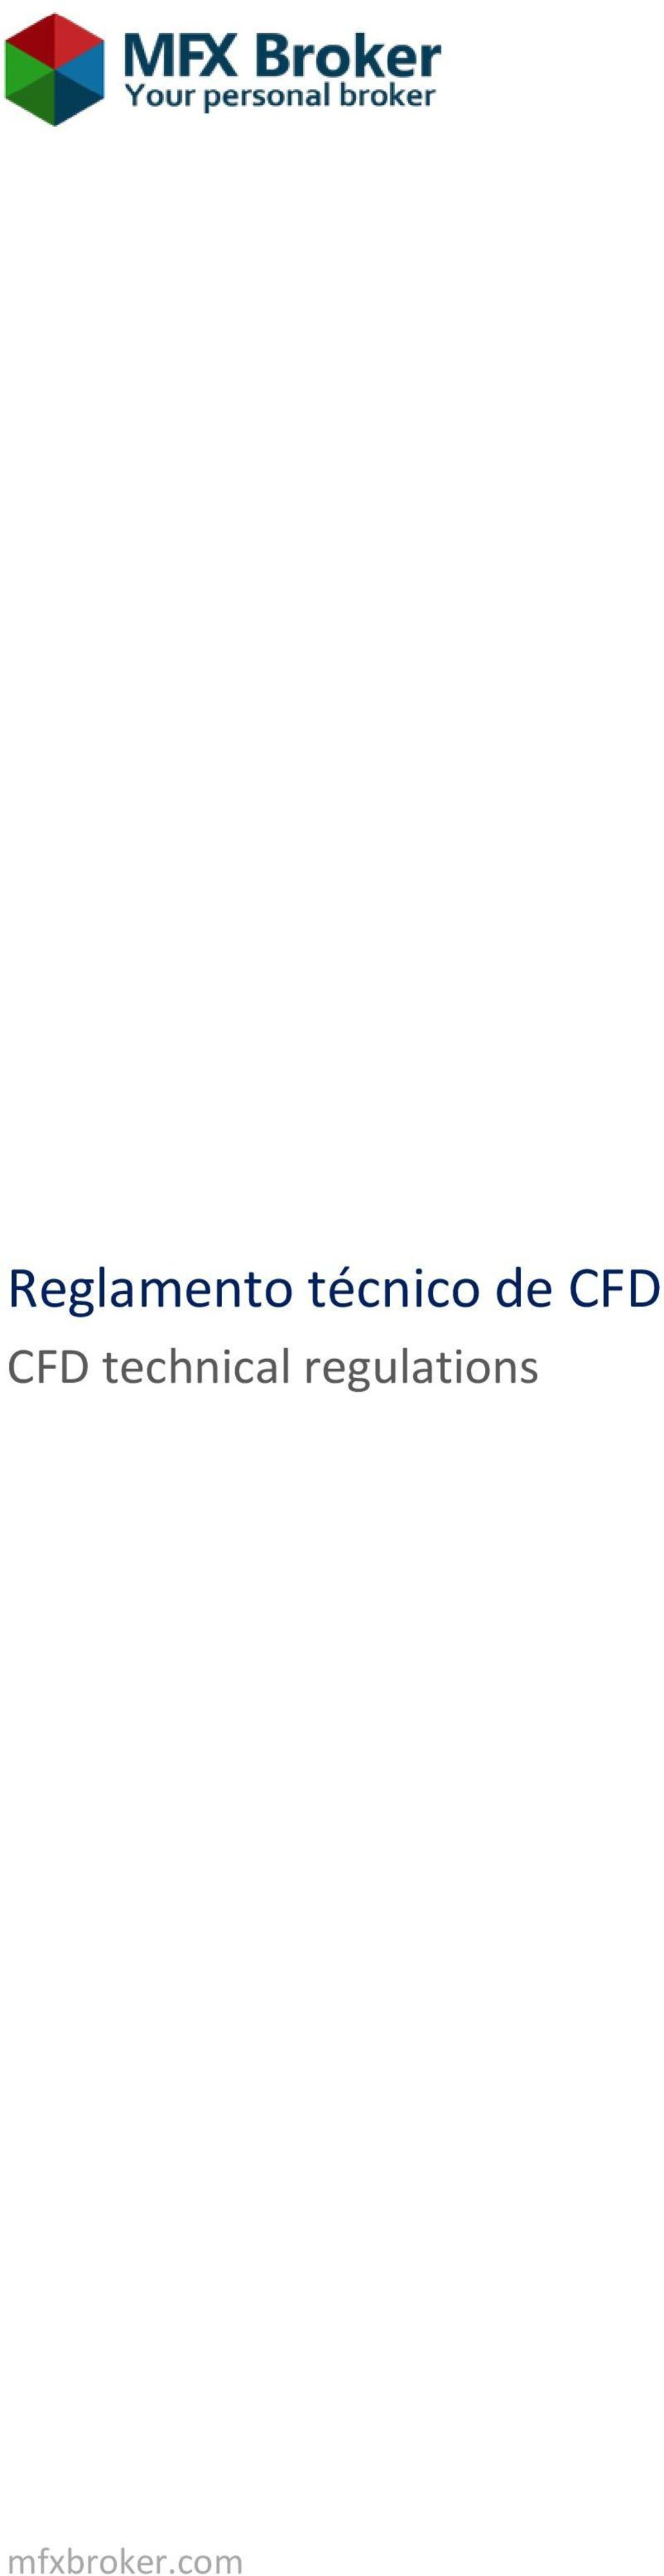 CFD technical